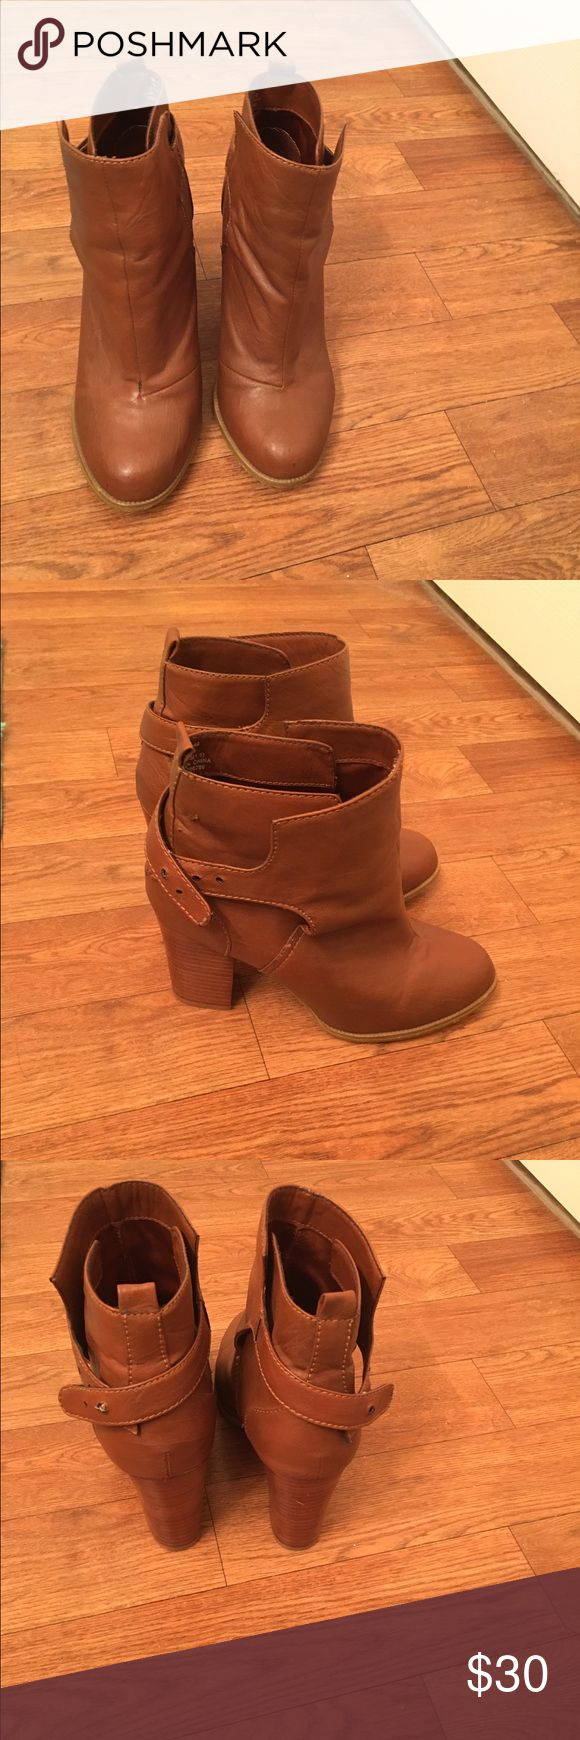 H&M Tan leather ankle boots Super cute tan ankle boots from H&M. Chunky heel, easy to walk in, great for fall and winter weather. Too big for me, only wore a couple times. Heel may be about 3-4 inches Shoes Ankle Boots & Booties